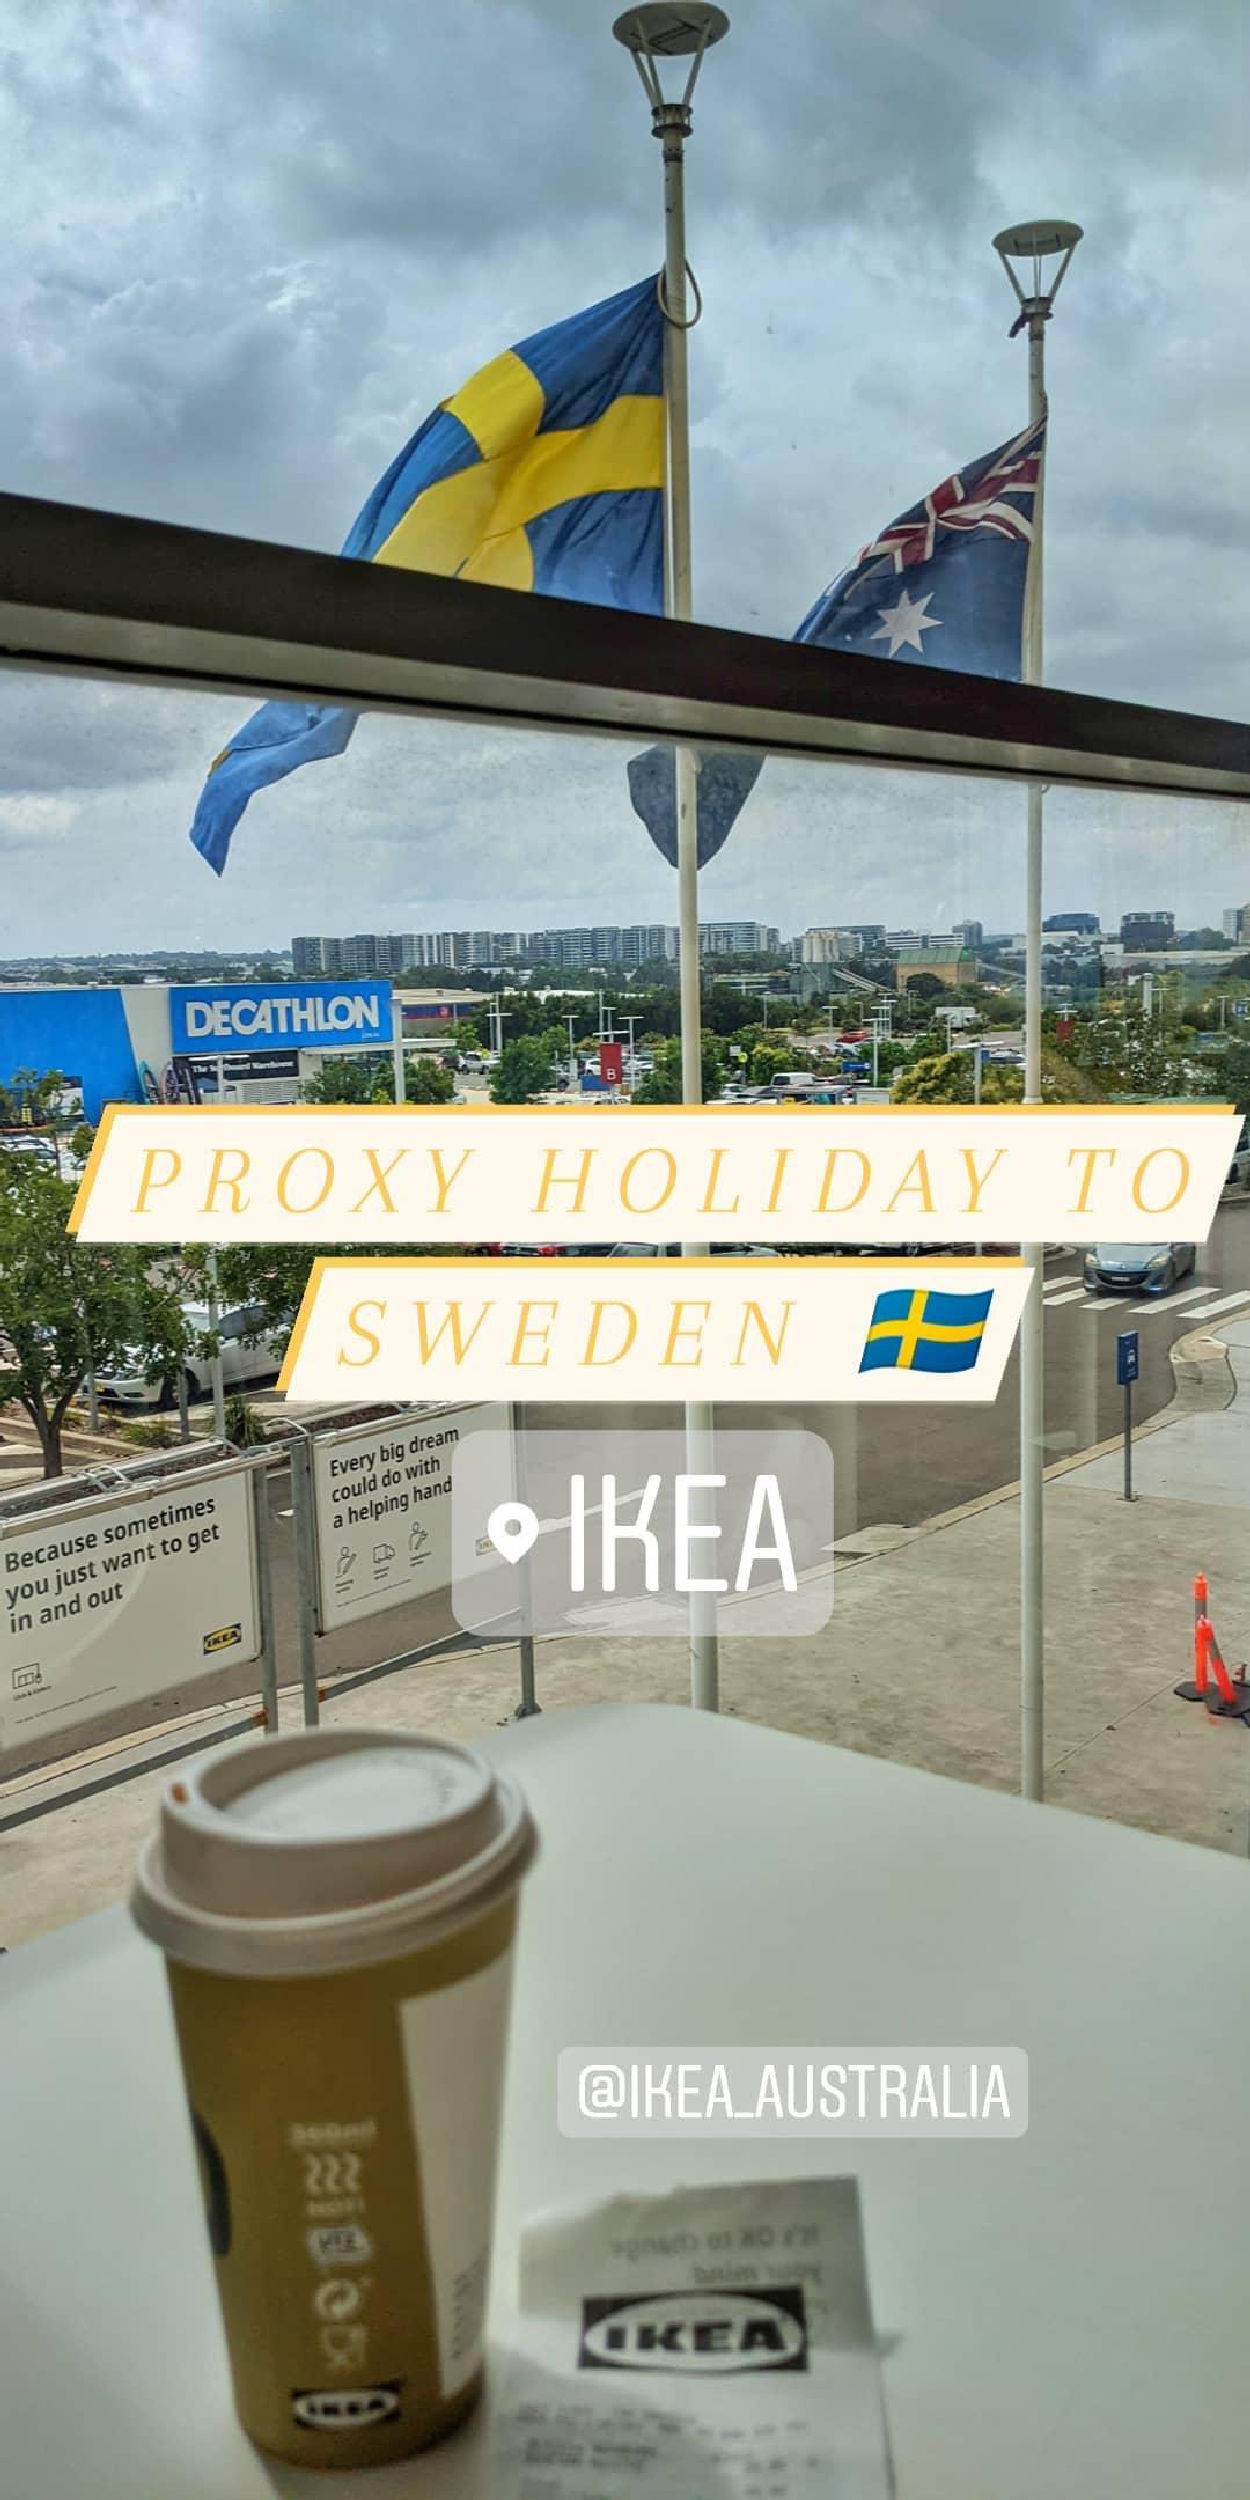 Proxy holiday to Sweden.